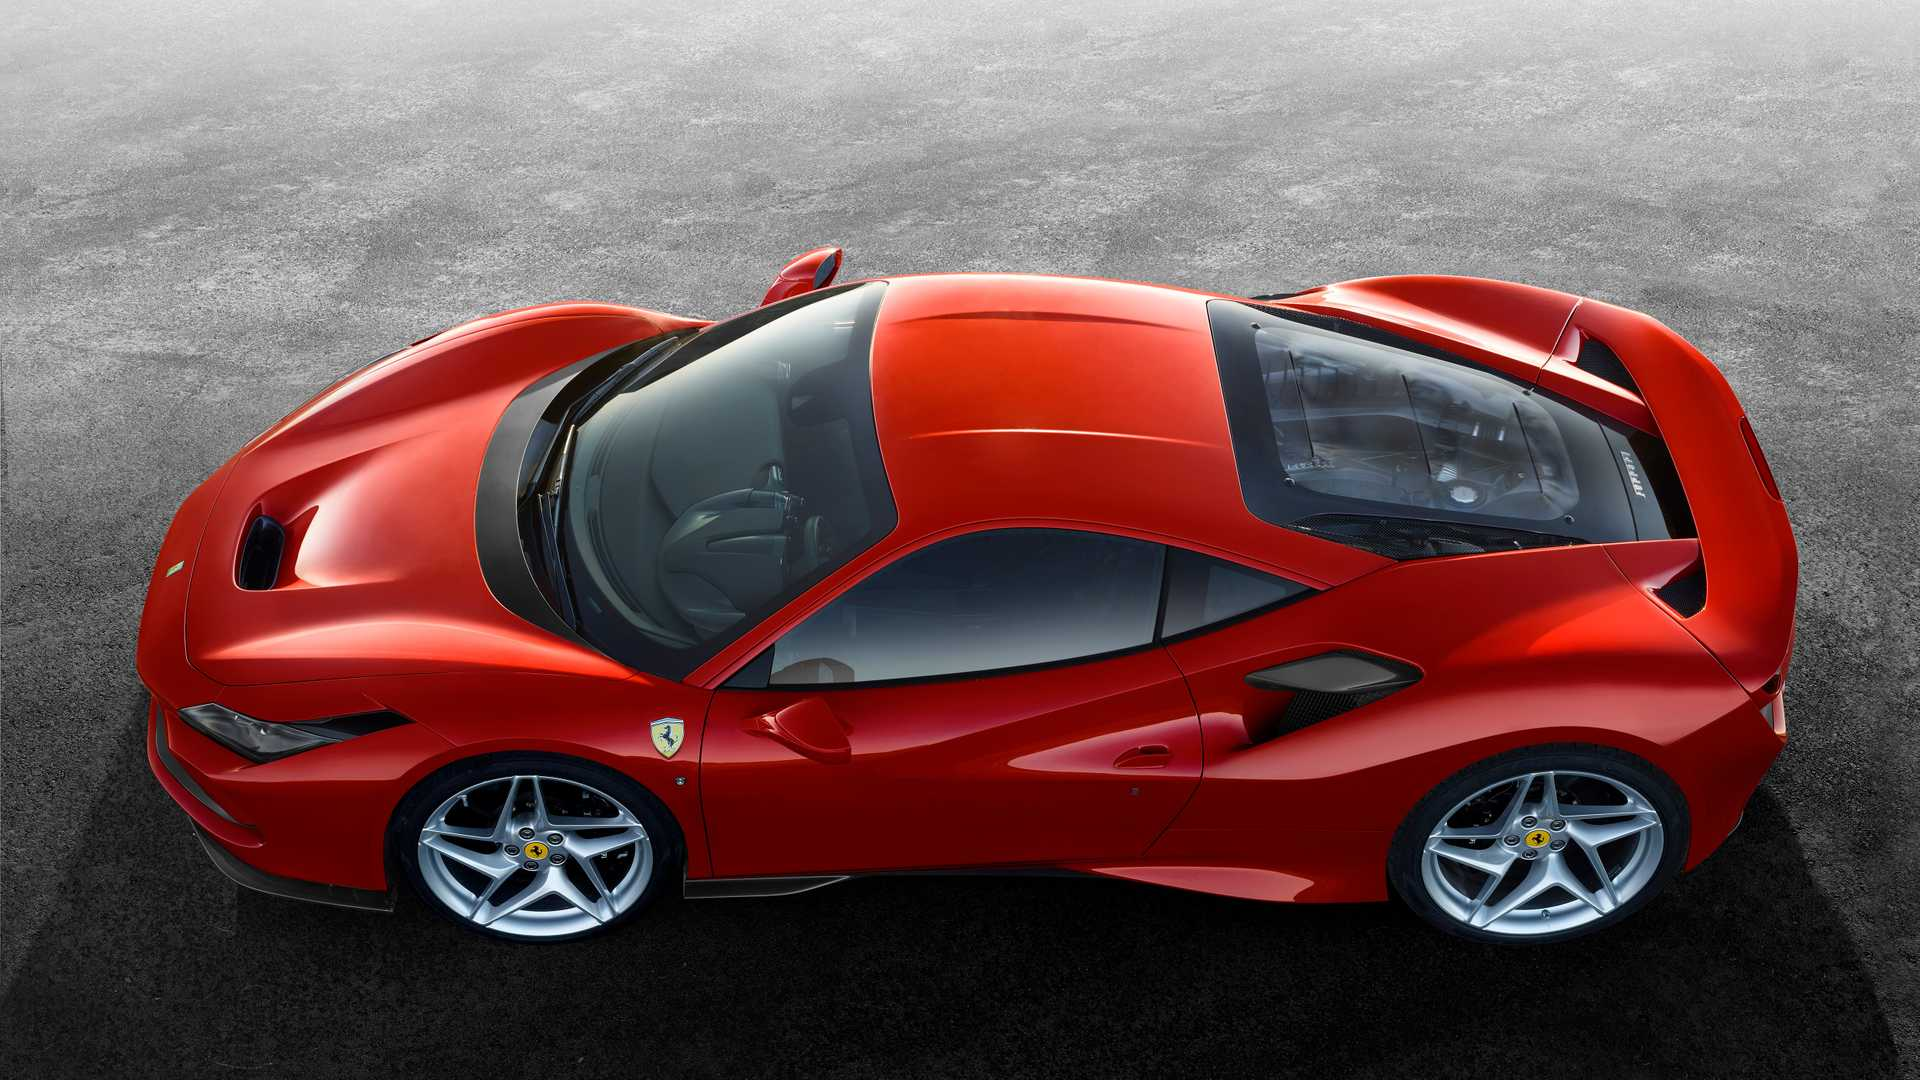 SF90 plug-in hybrid is Ferrari's fastest ever road vehicle